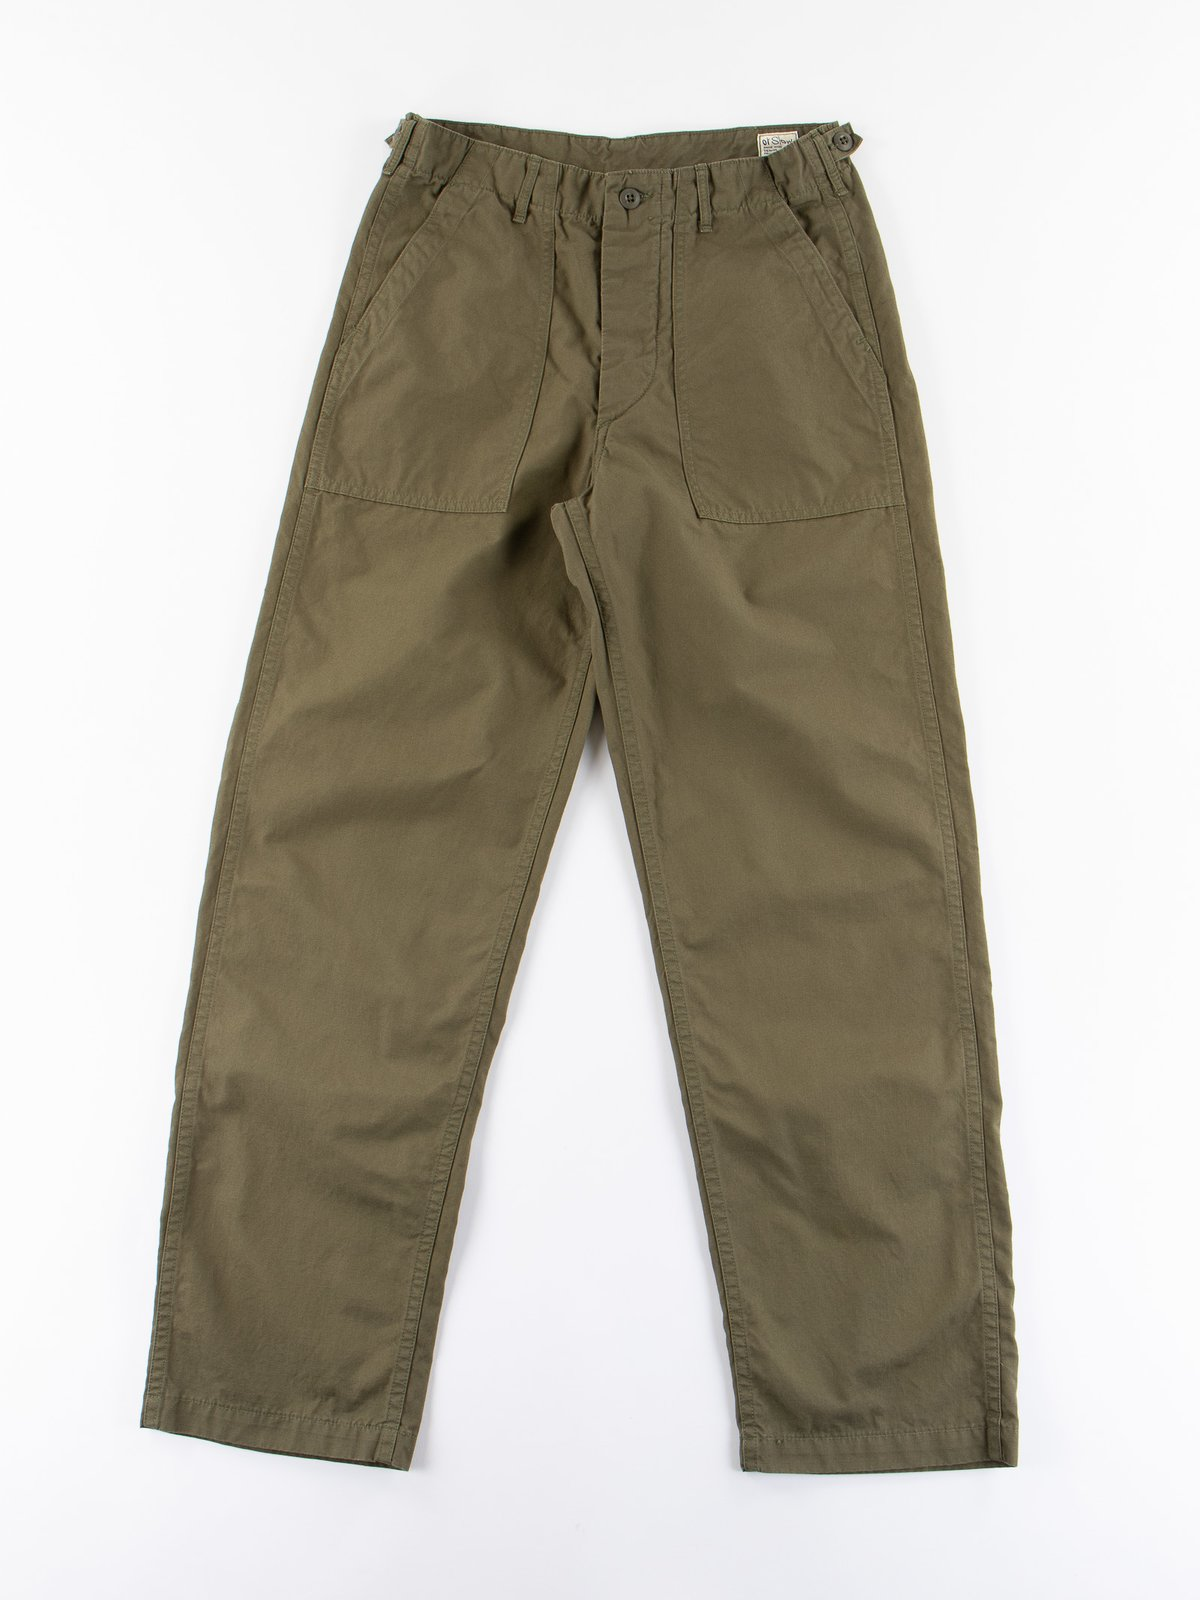 Army Green Ripstop Regular Fit US Army Fatigue Pant - Image 1